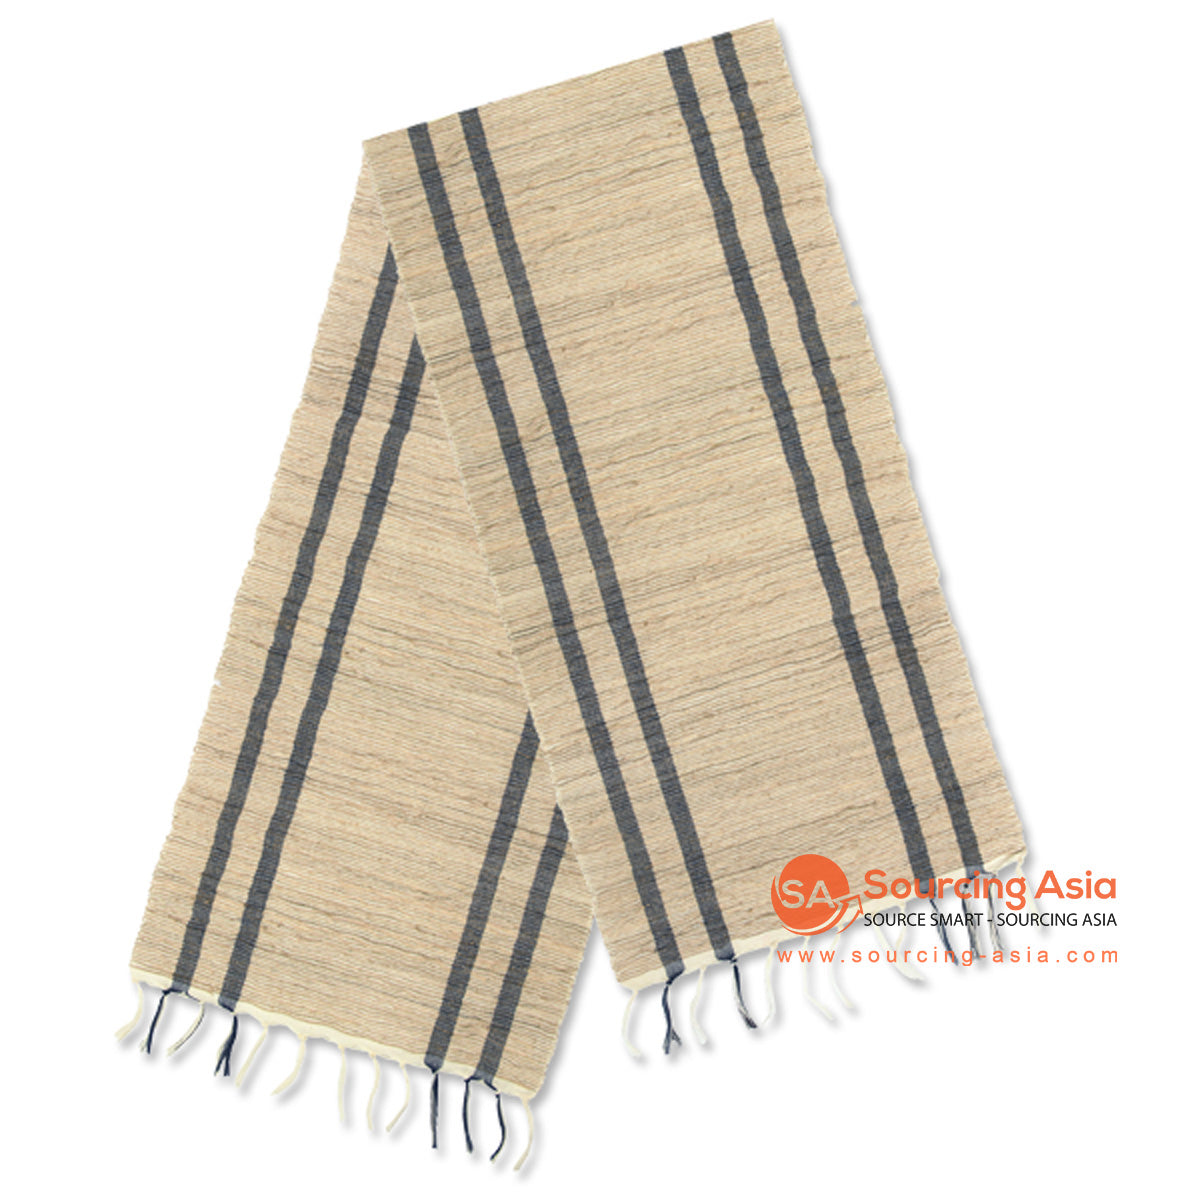 BZN042 SANDALWOOD TABLE RUNNER